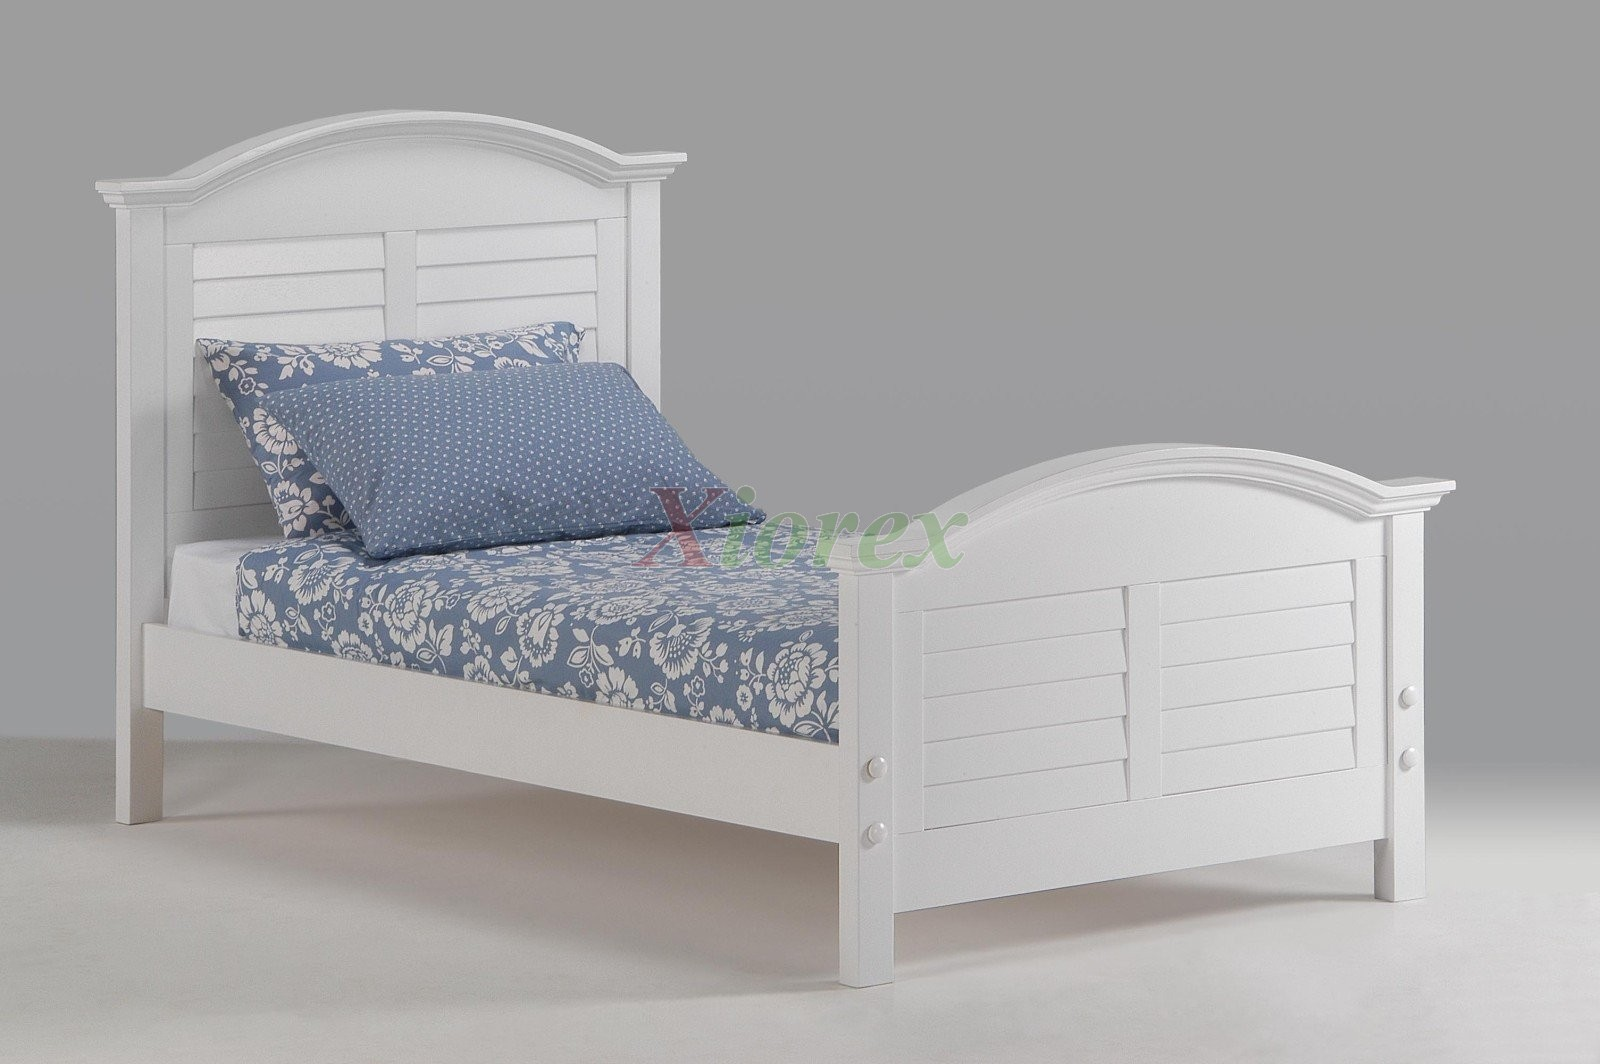 White Bed for Girls Night and Day Sandpiper Bed with Trundle Xiorex